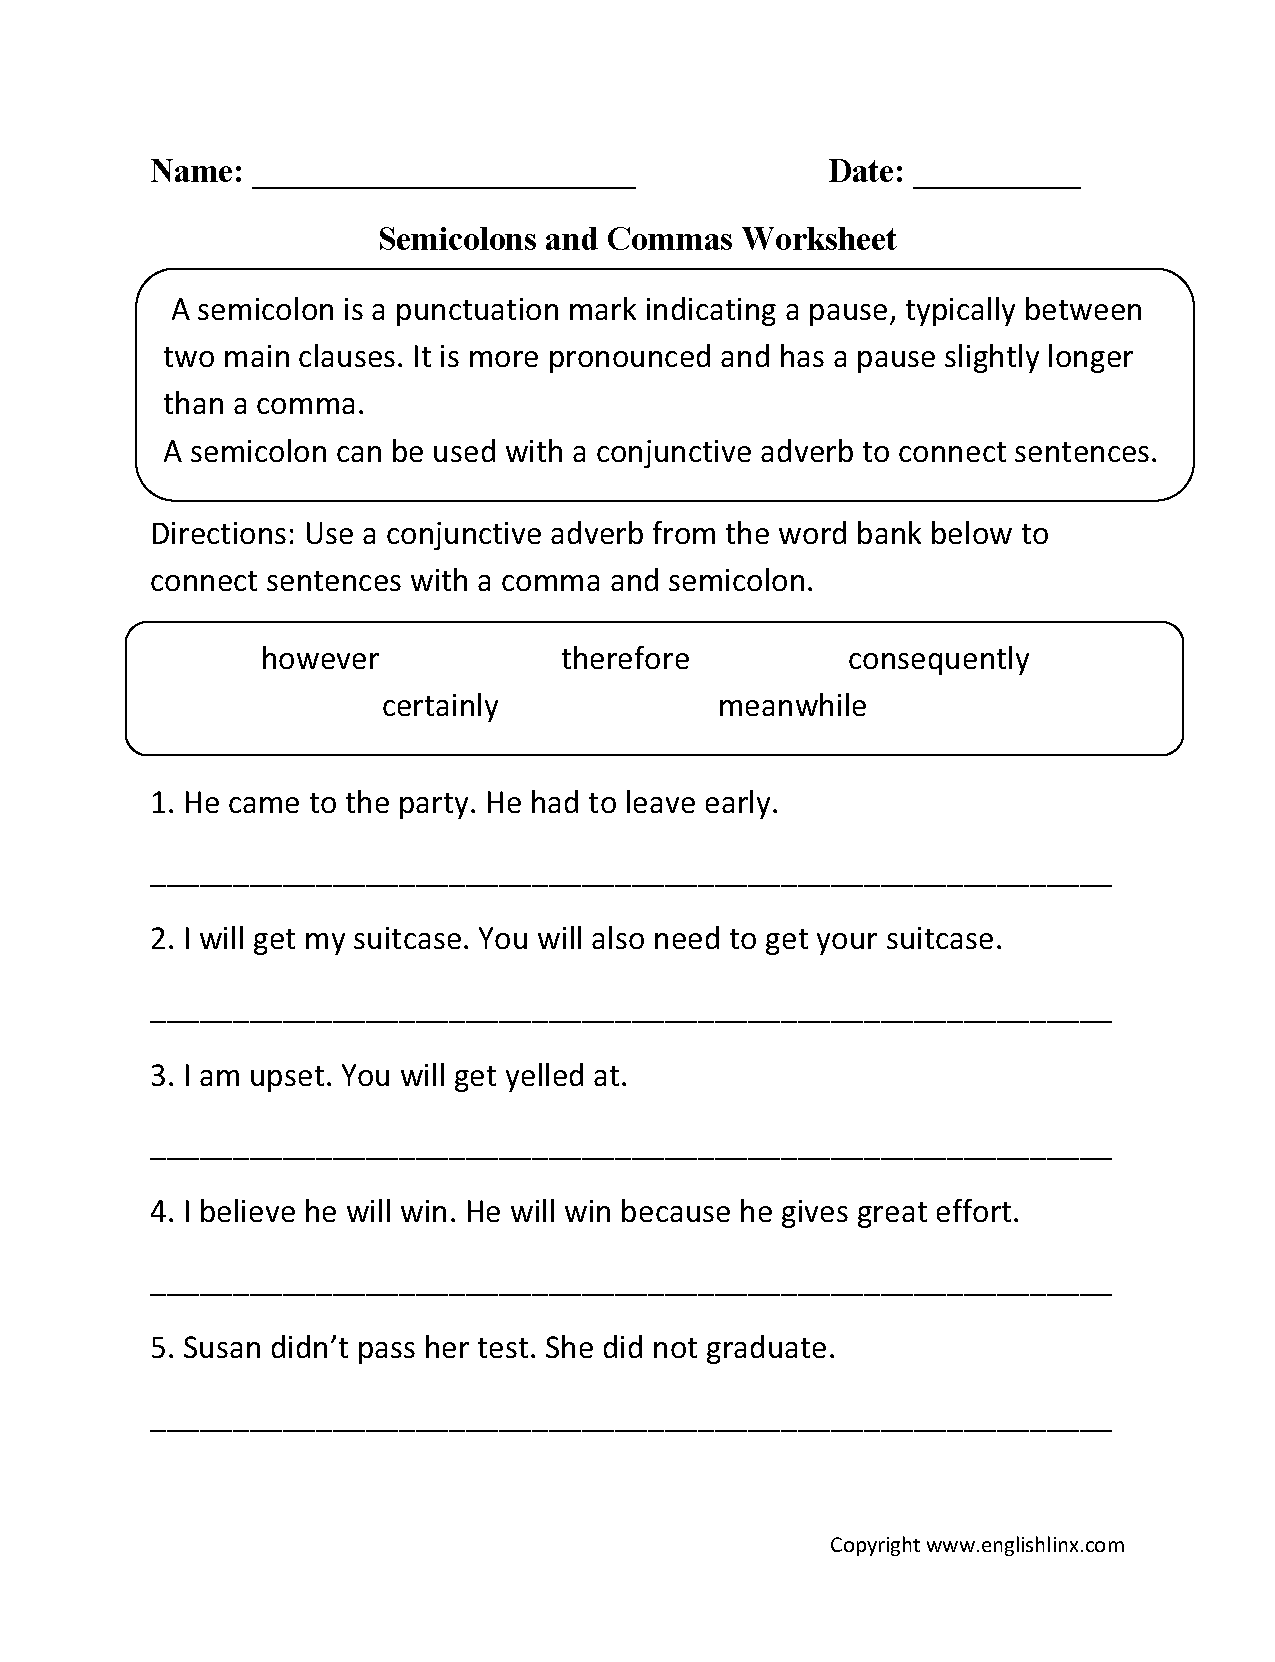 Worksheets Semicolon Worksheets punctuation worksheets semicolon and commas worksheet